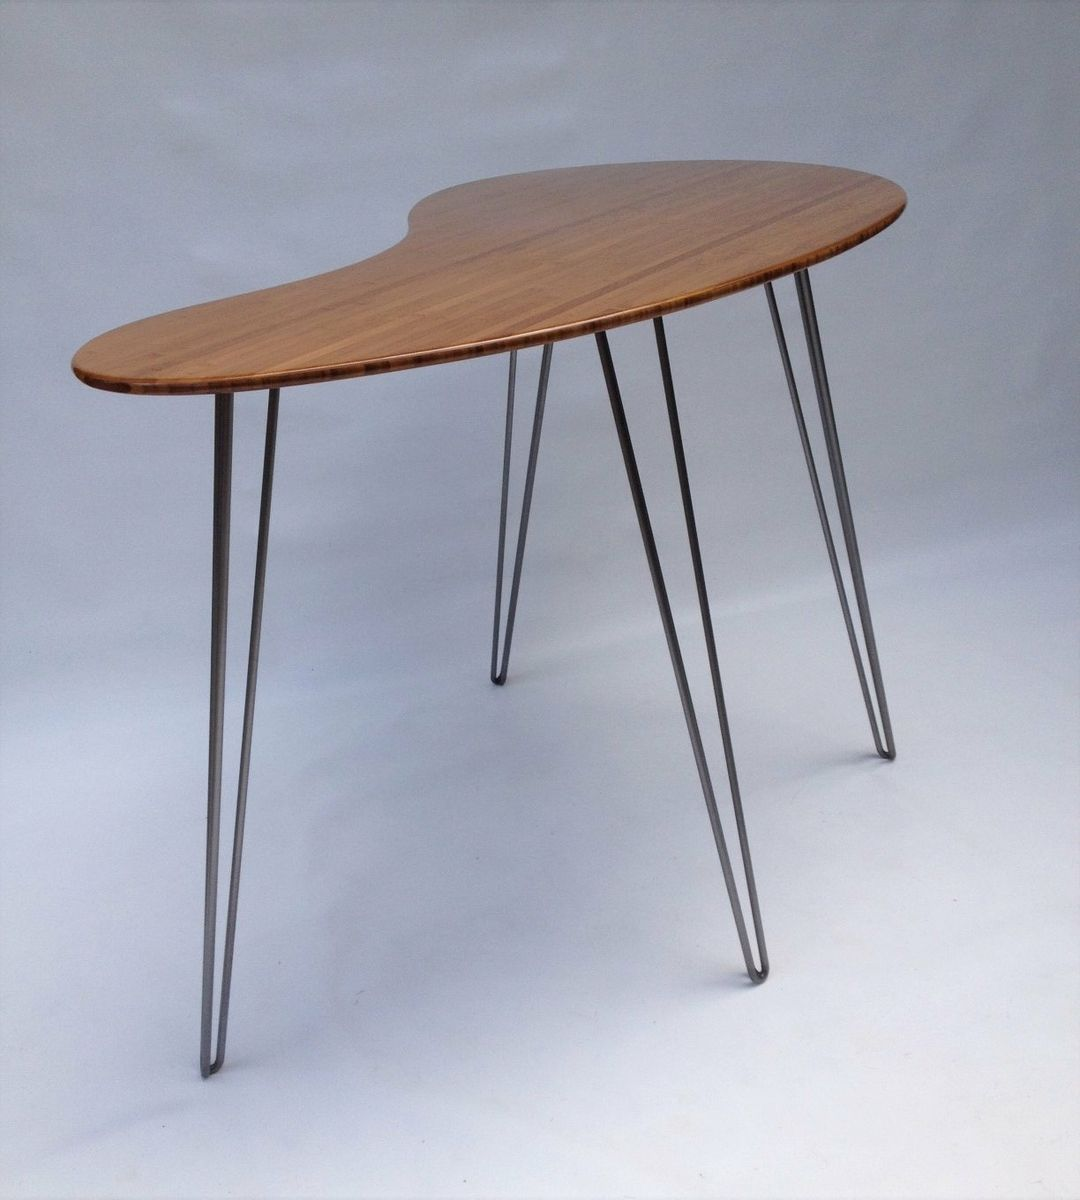 custom standing desk kidney shaped mid. Interesting Shaped Buy A Hand Made Standing Desk Kidney Shaped Mid Century Modern Made To  Order From Studio1212  CustomMadecom With Custom Desk Shaped T